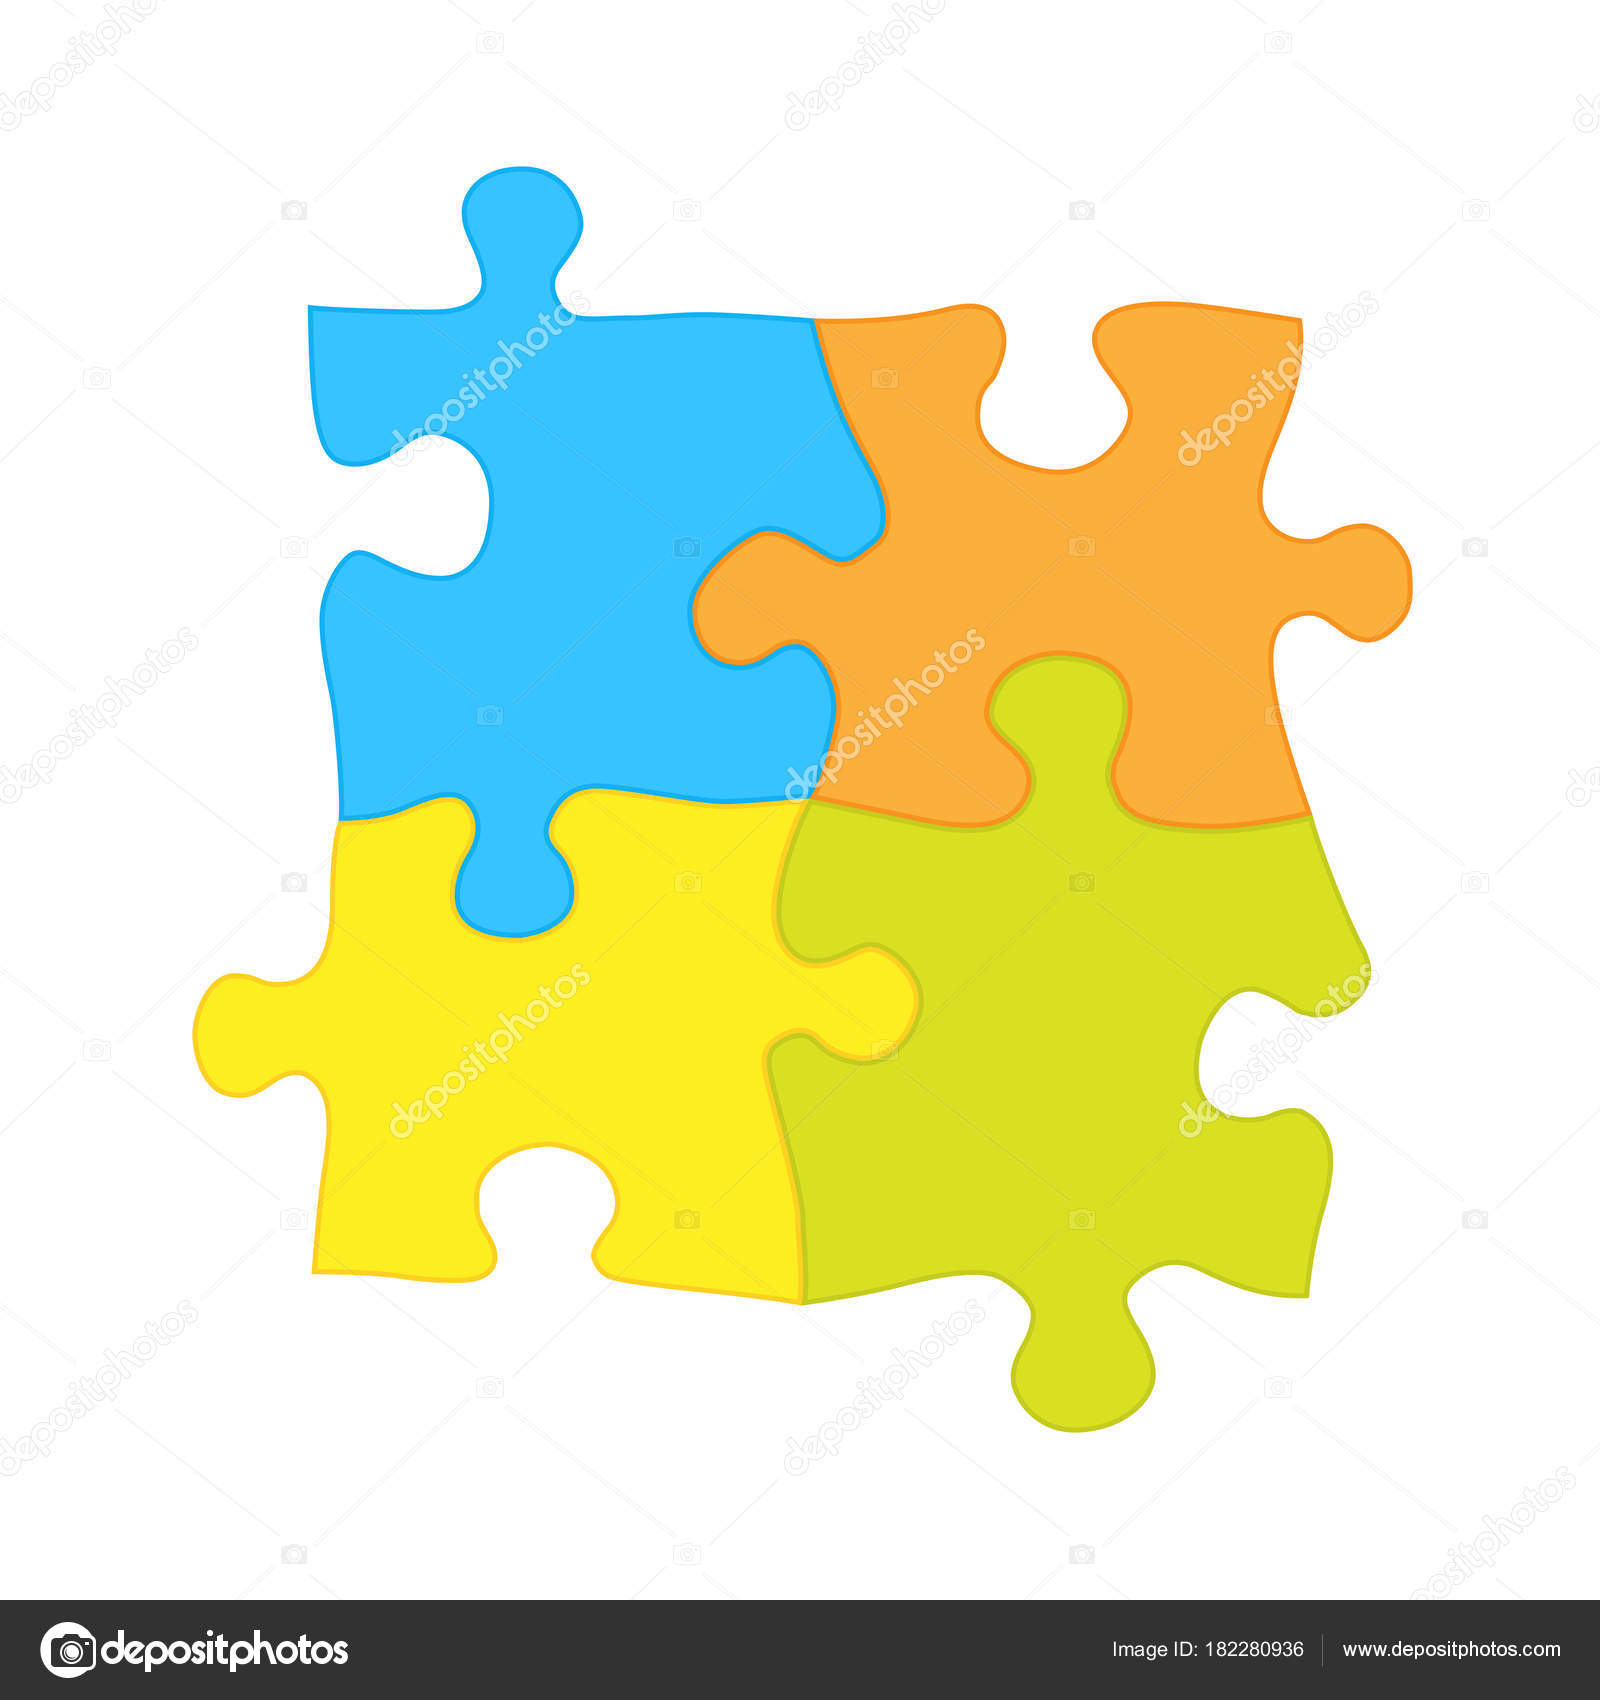 Four Jigsaw Puzzle Pieces